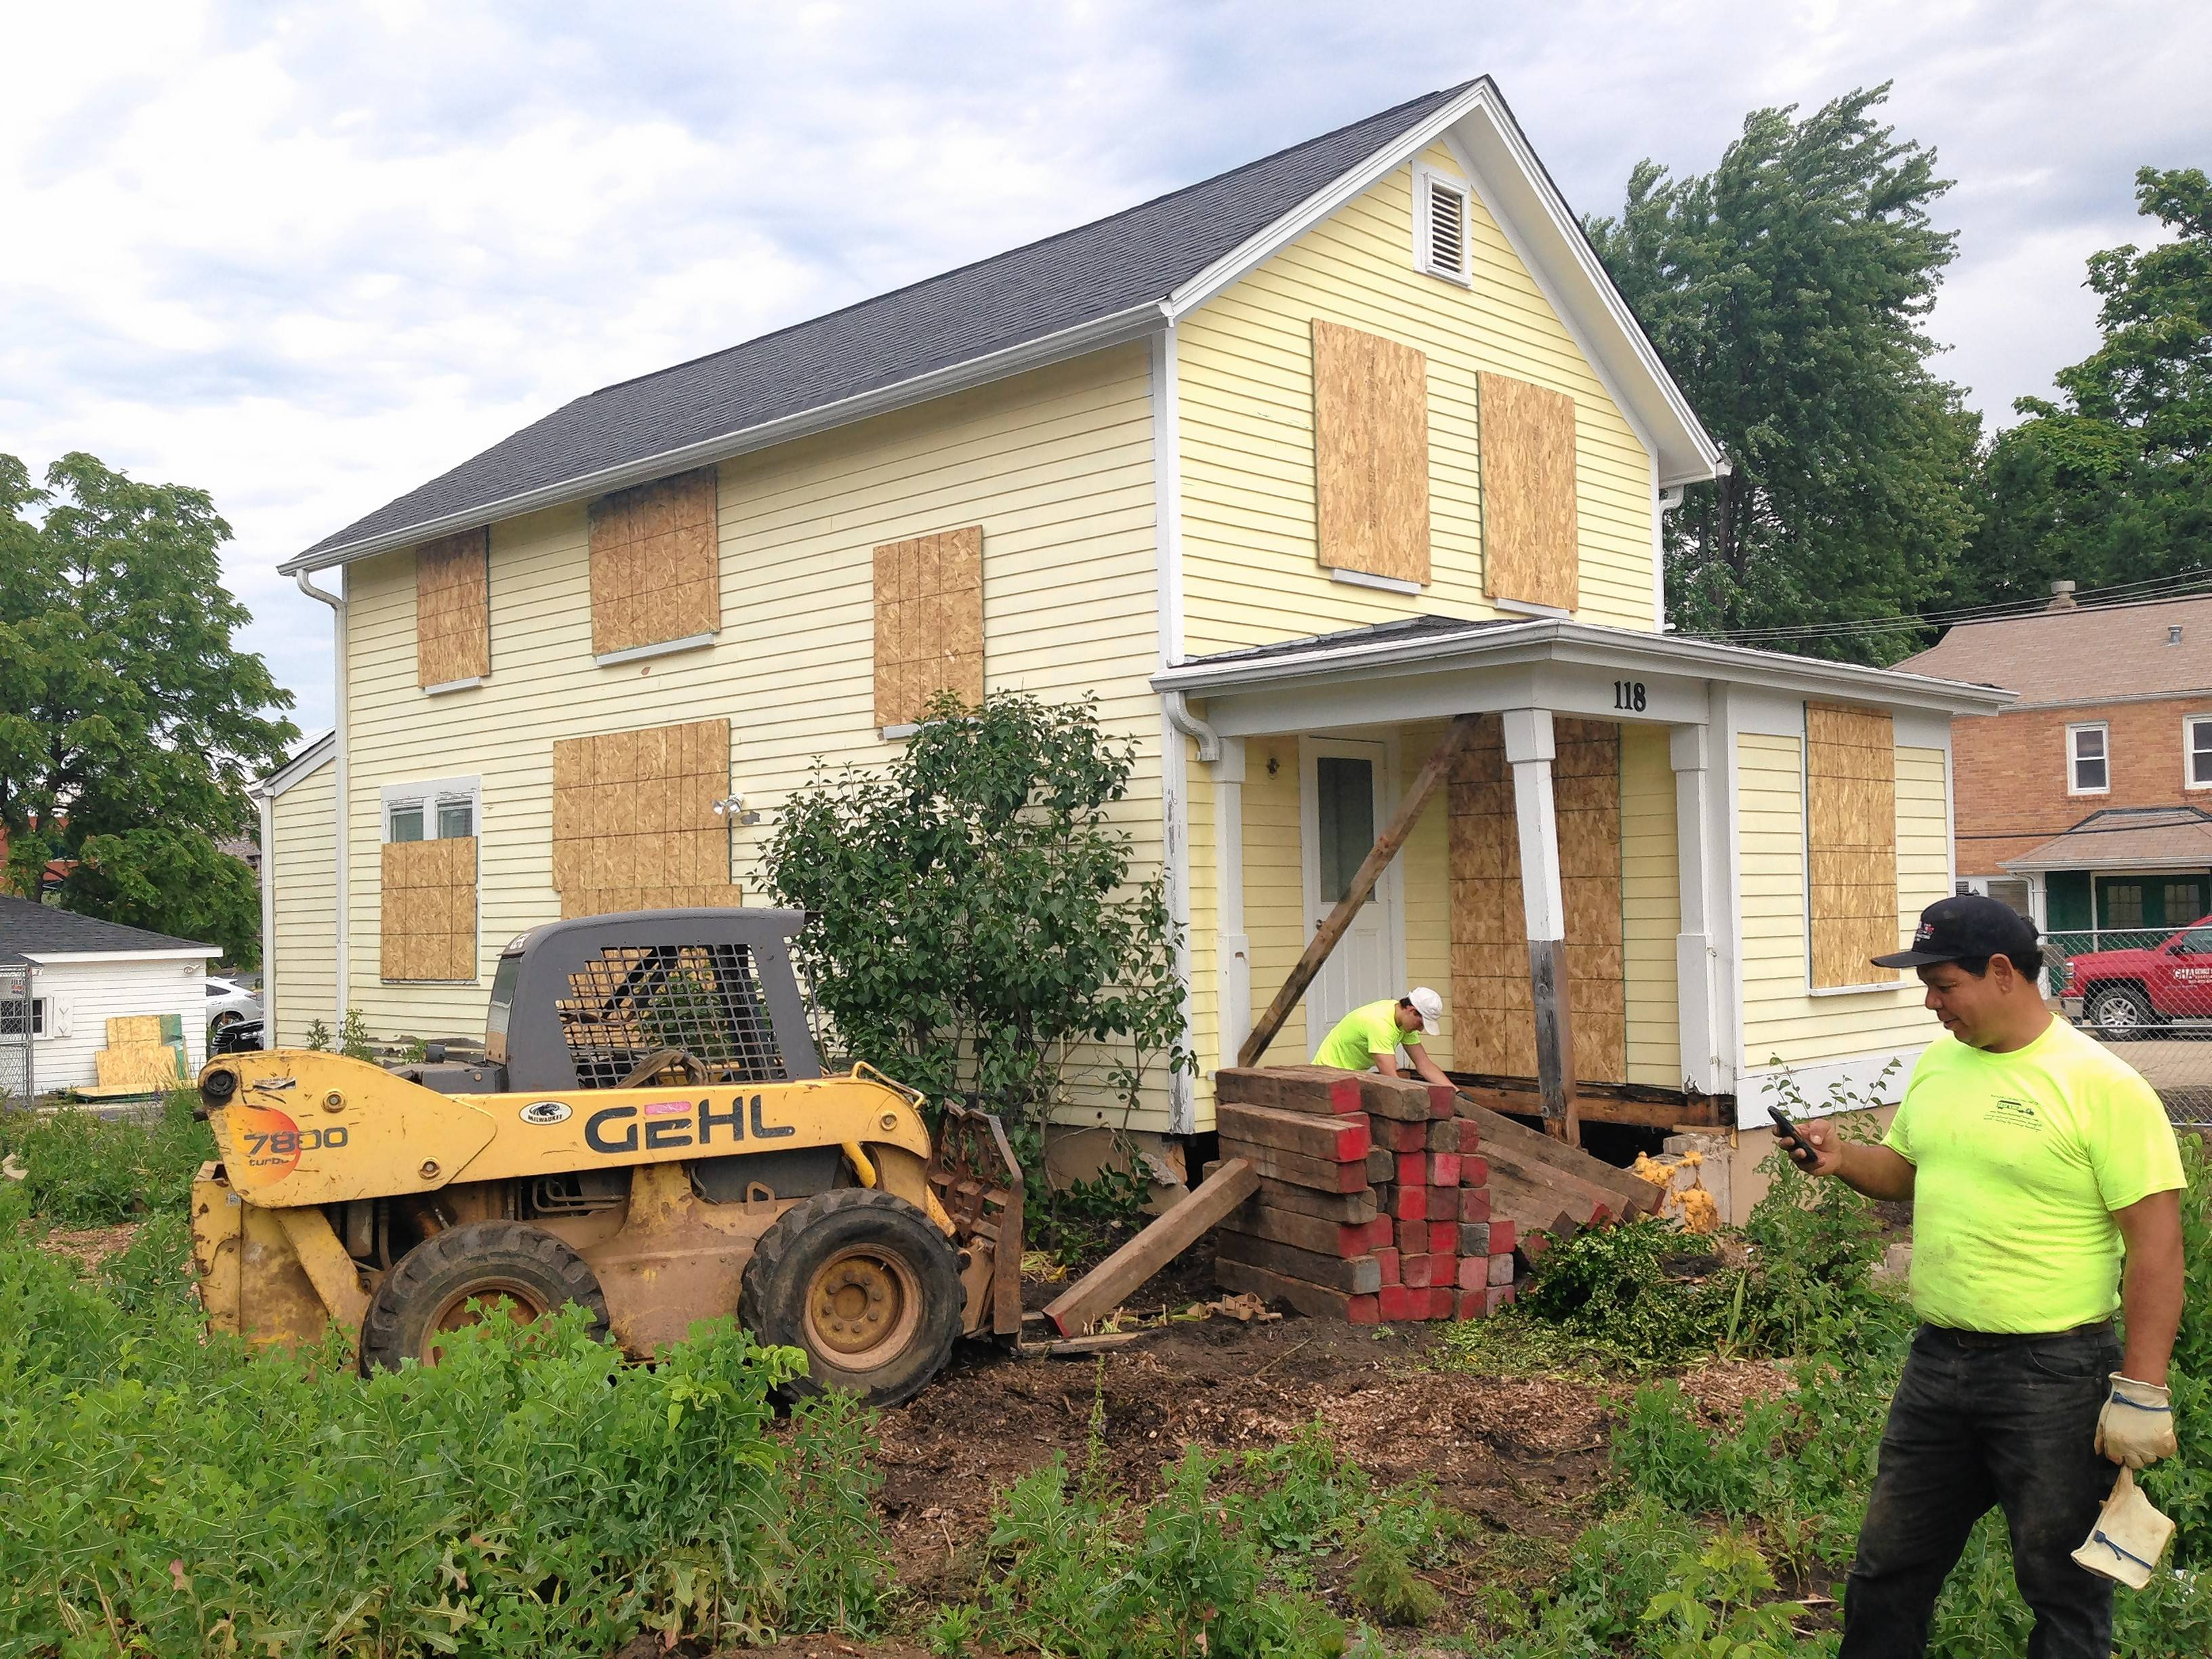 Barrington house from 1870s will be moved to Barrington Hills